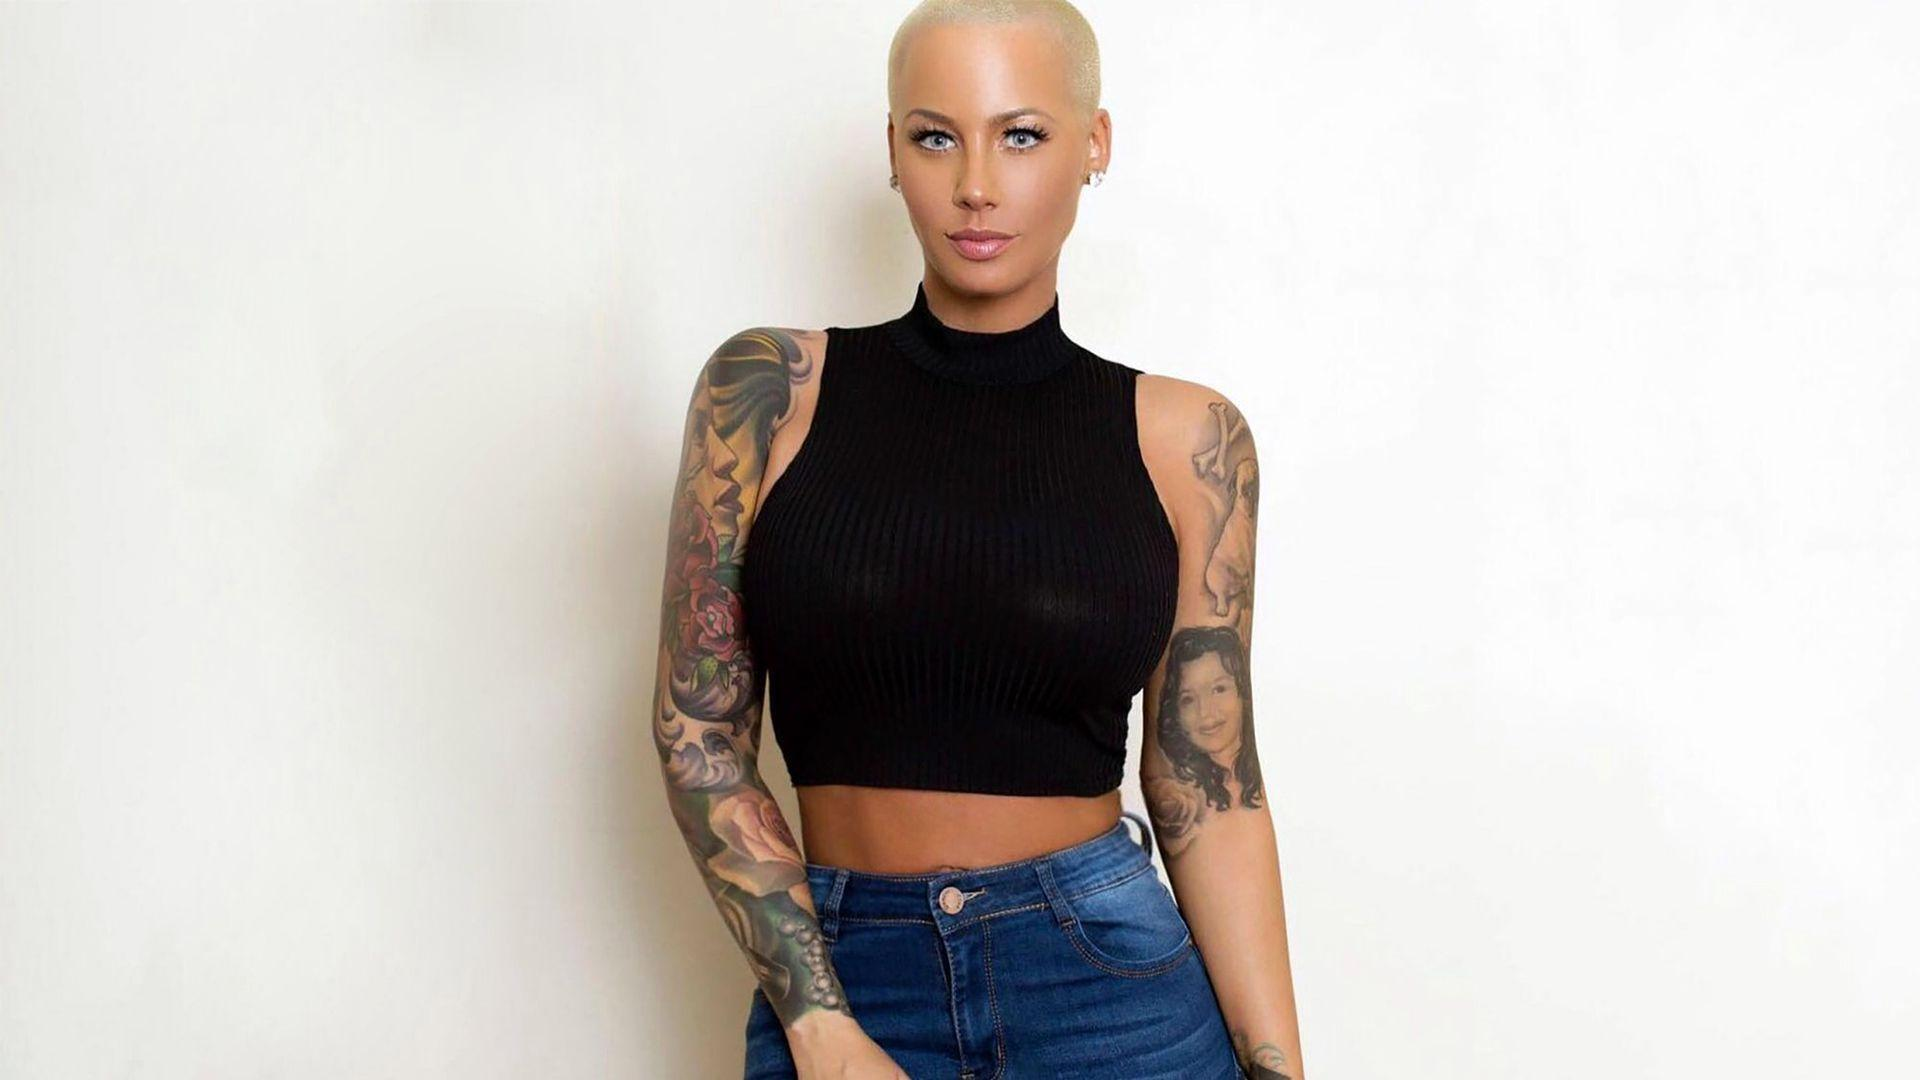 1920x1080 - Amber Rose Wallpapers 16